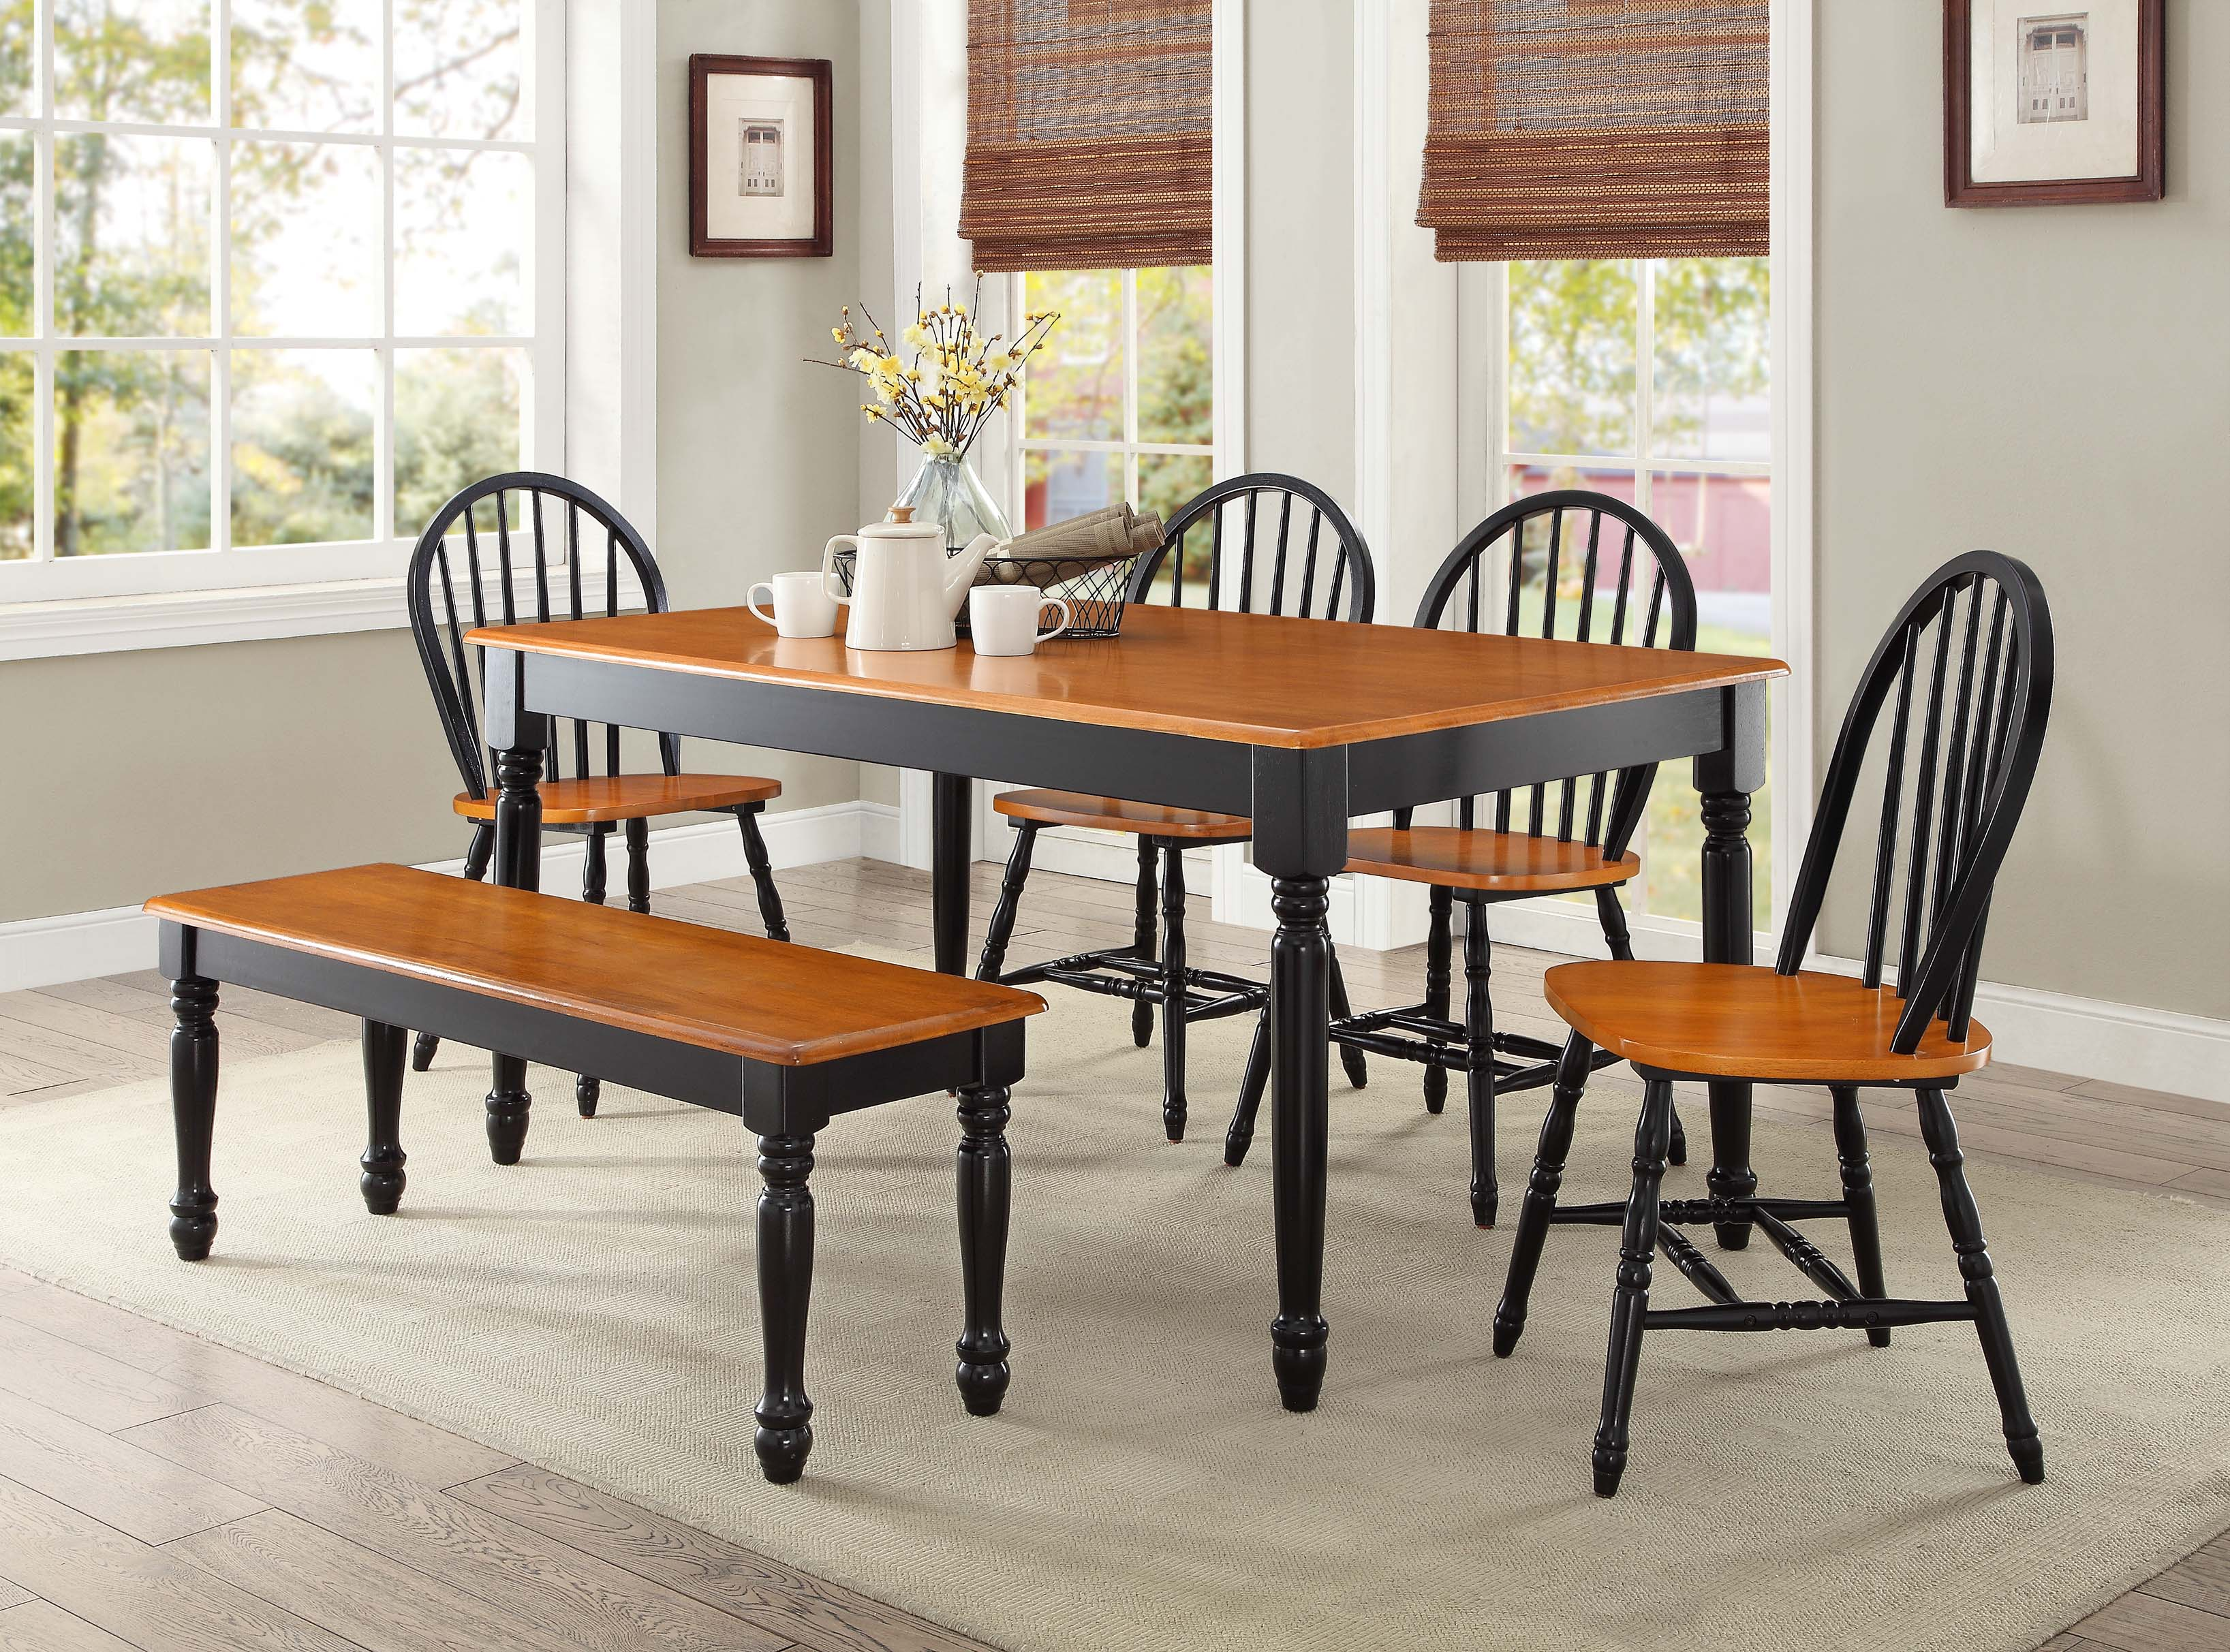 Better Homes And Gardens Autumn Lane Farmhouse 6 Piece Dining Set Bundle Black Oak